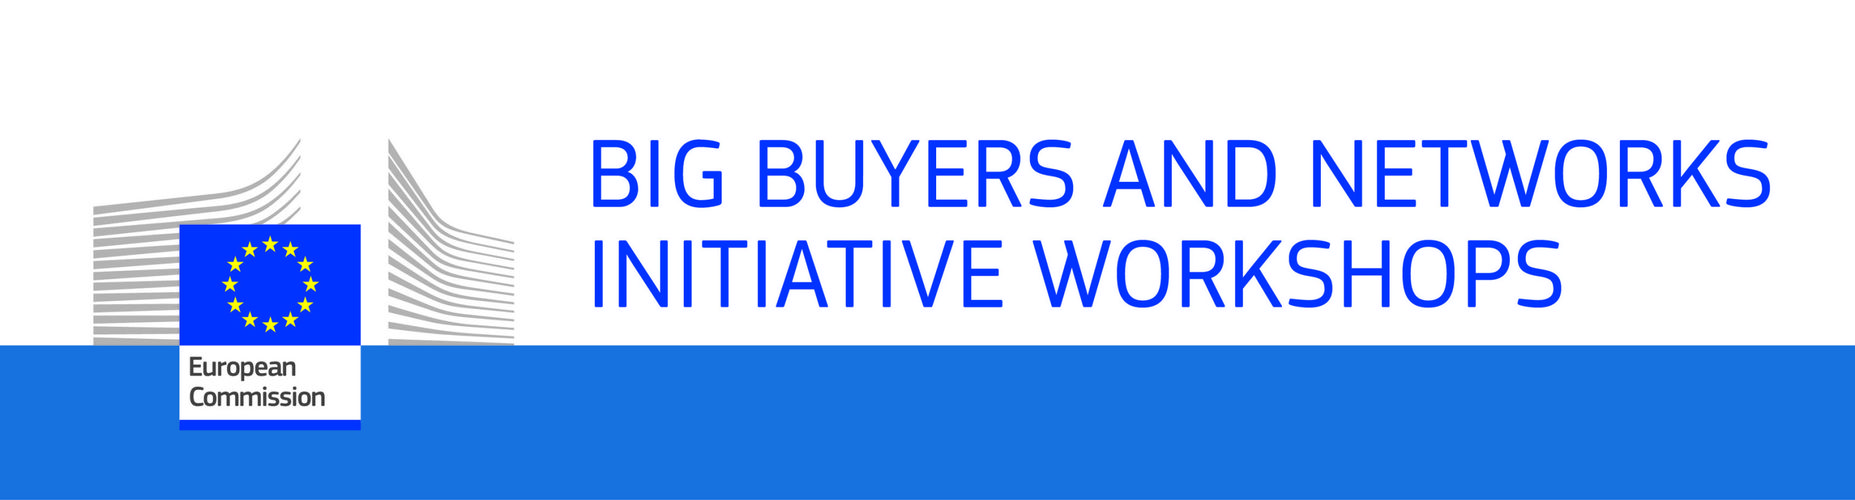 Big Buyers and Networks Initiative workshops - Freiburg  4-5 March